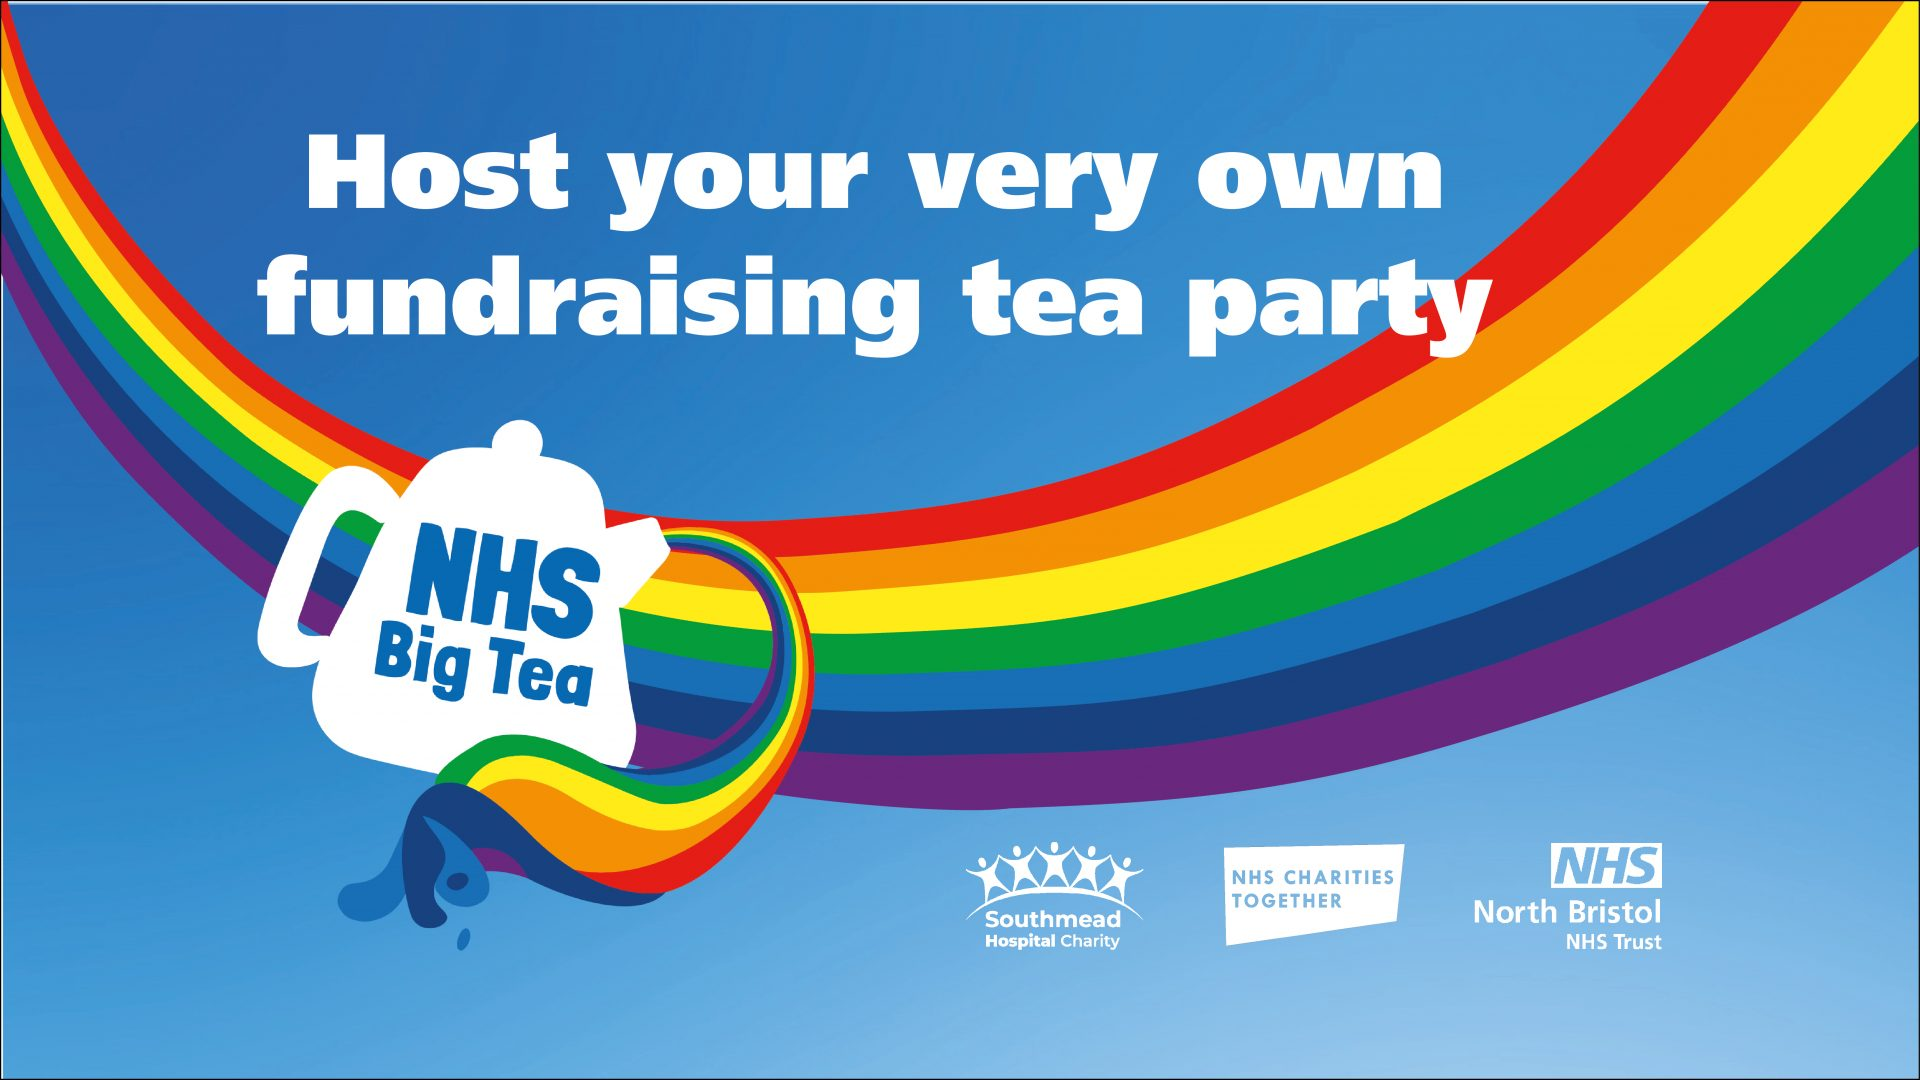 Southmead Hospital Charity Graphic advertising the NHS Big Tea with the words Host your very own fundraising tea party